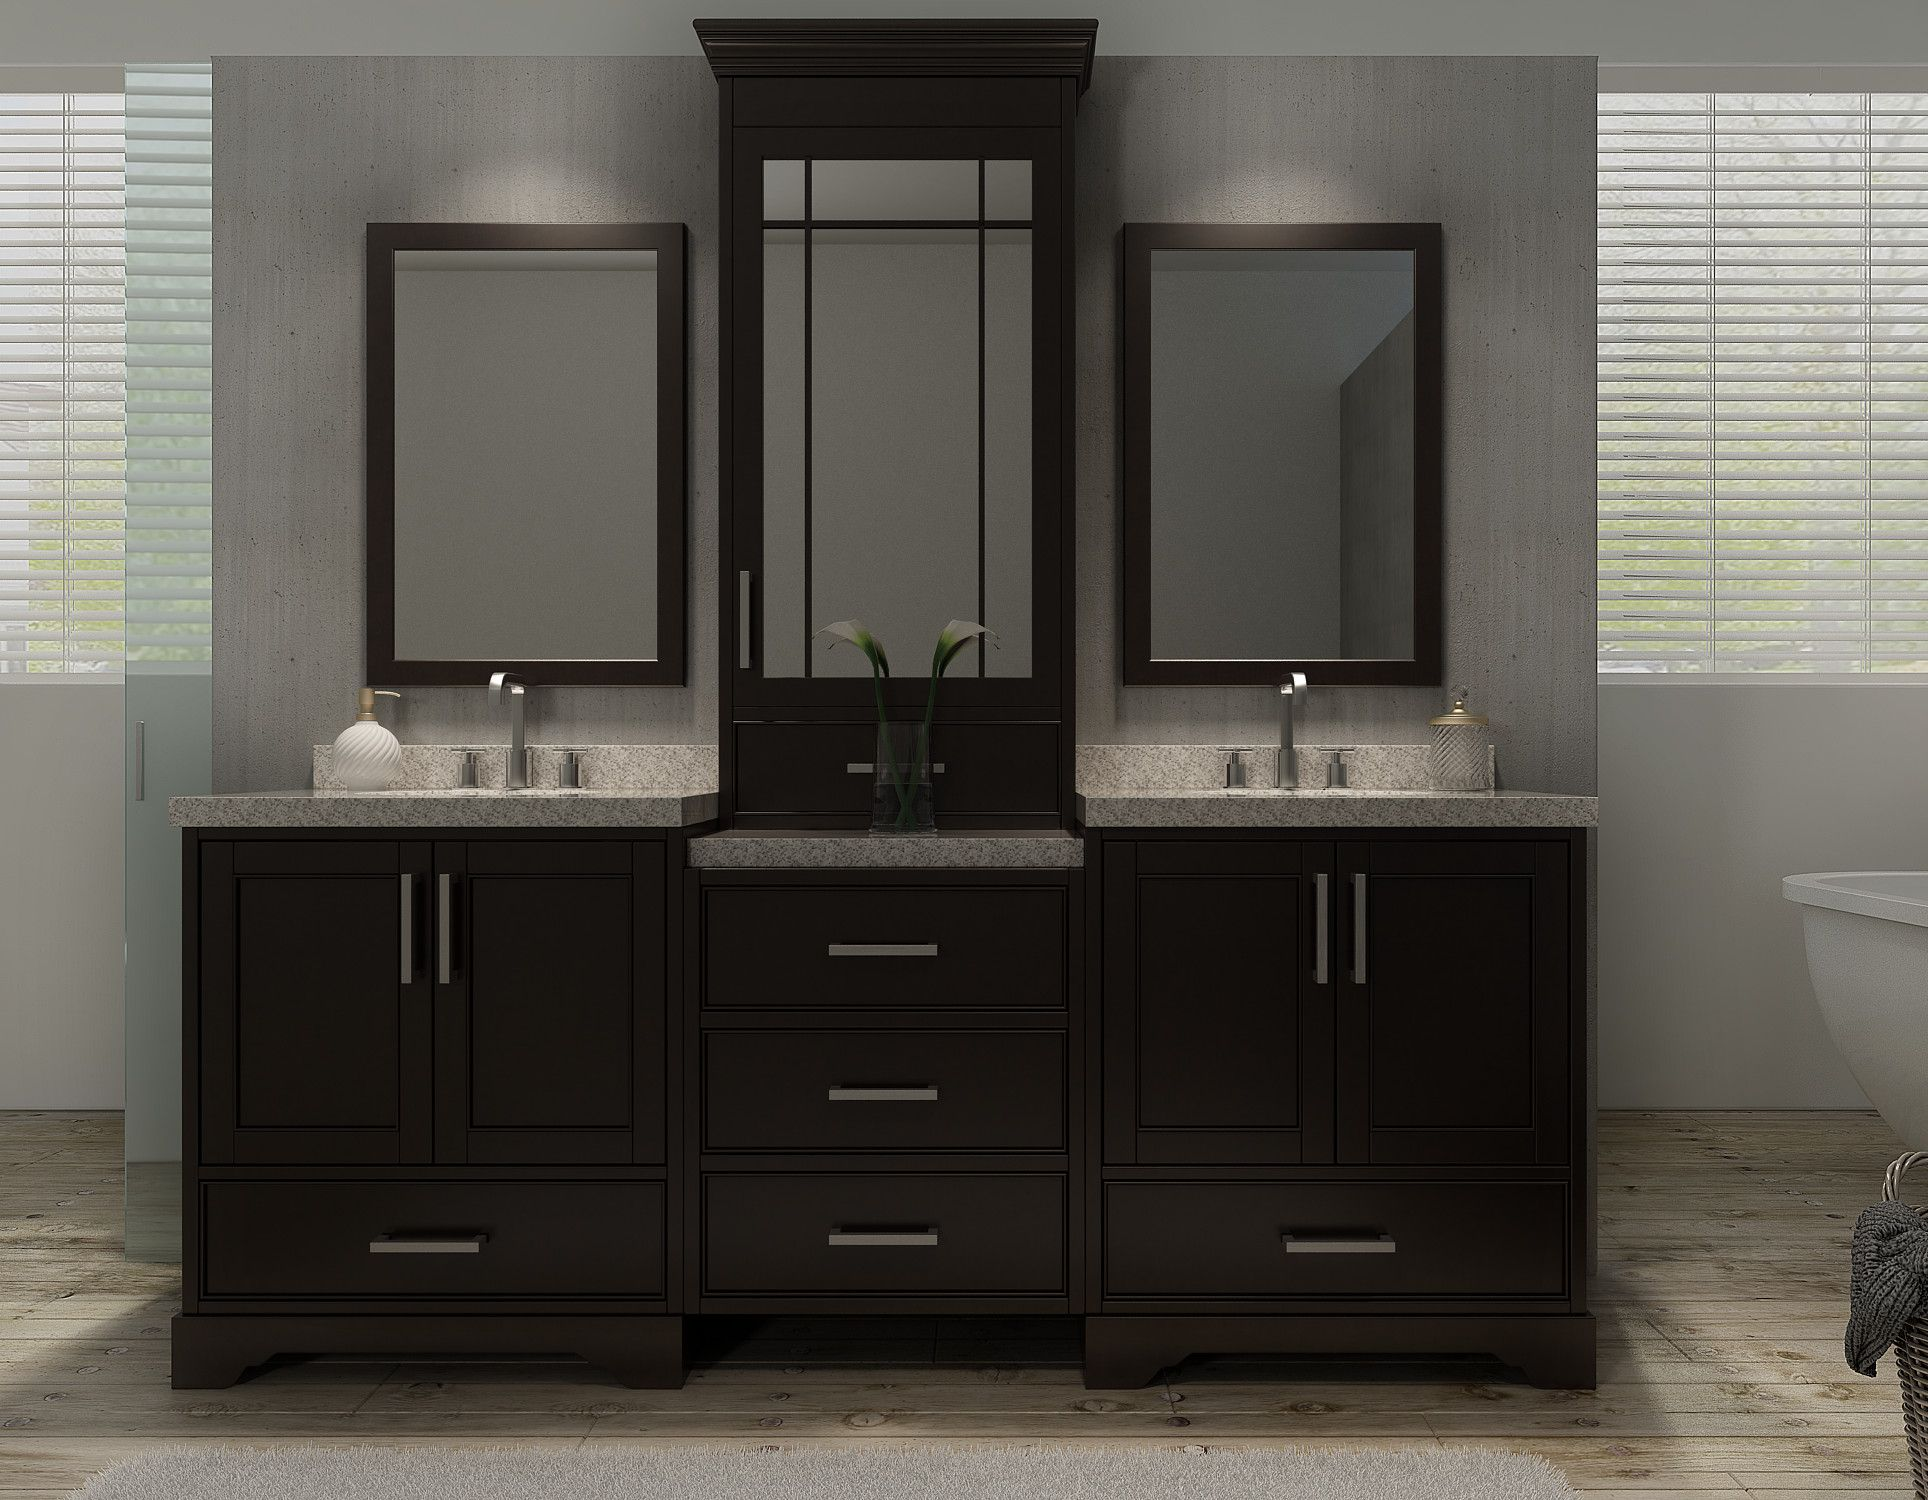 Ace Stafford 85 Inch Double Sink Bathroom Vanity Set In Espresso Inspiration 72 Inch Bathroom Vanity Double Sink Decorating Inspiration